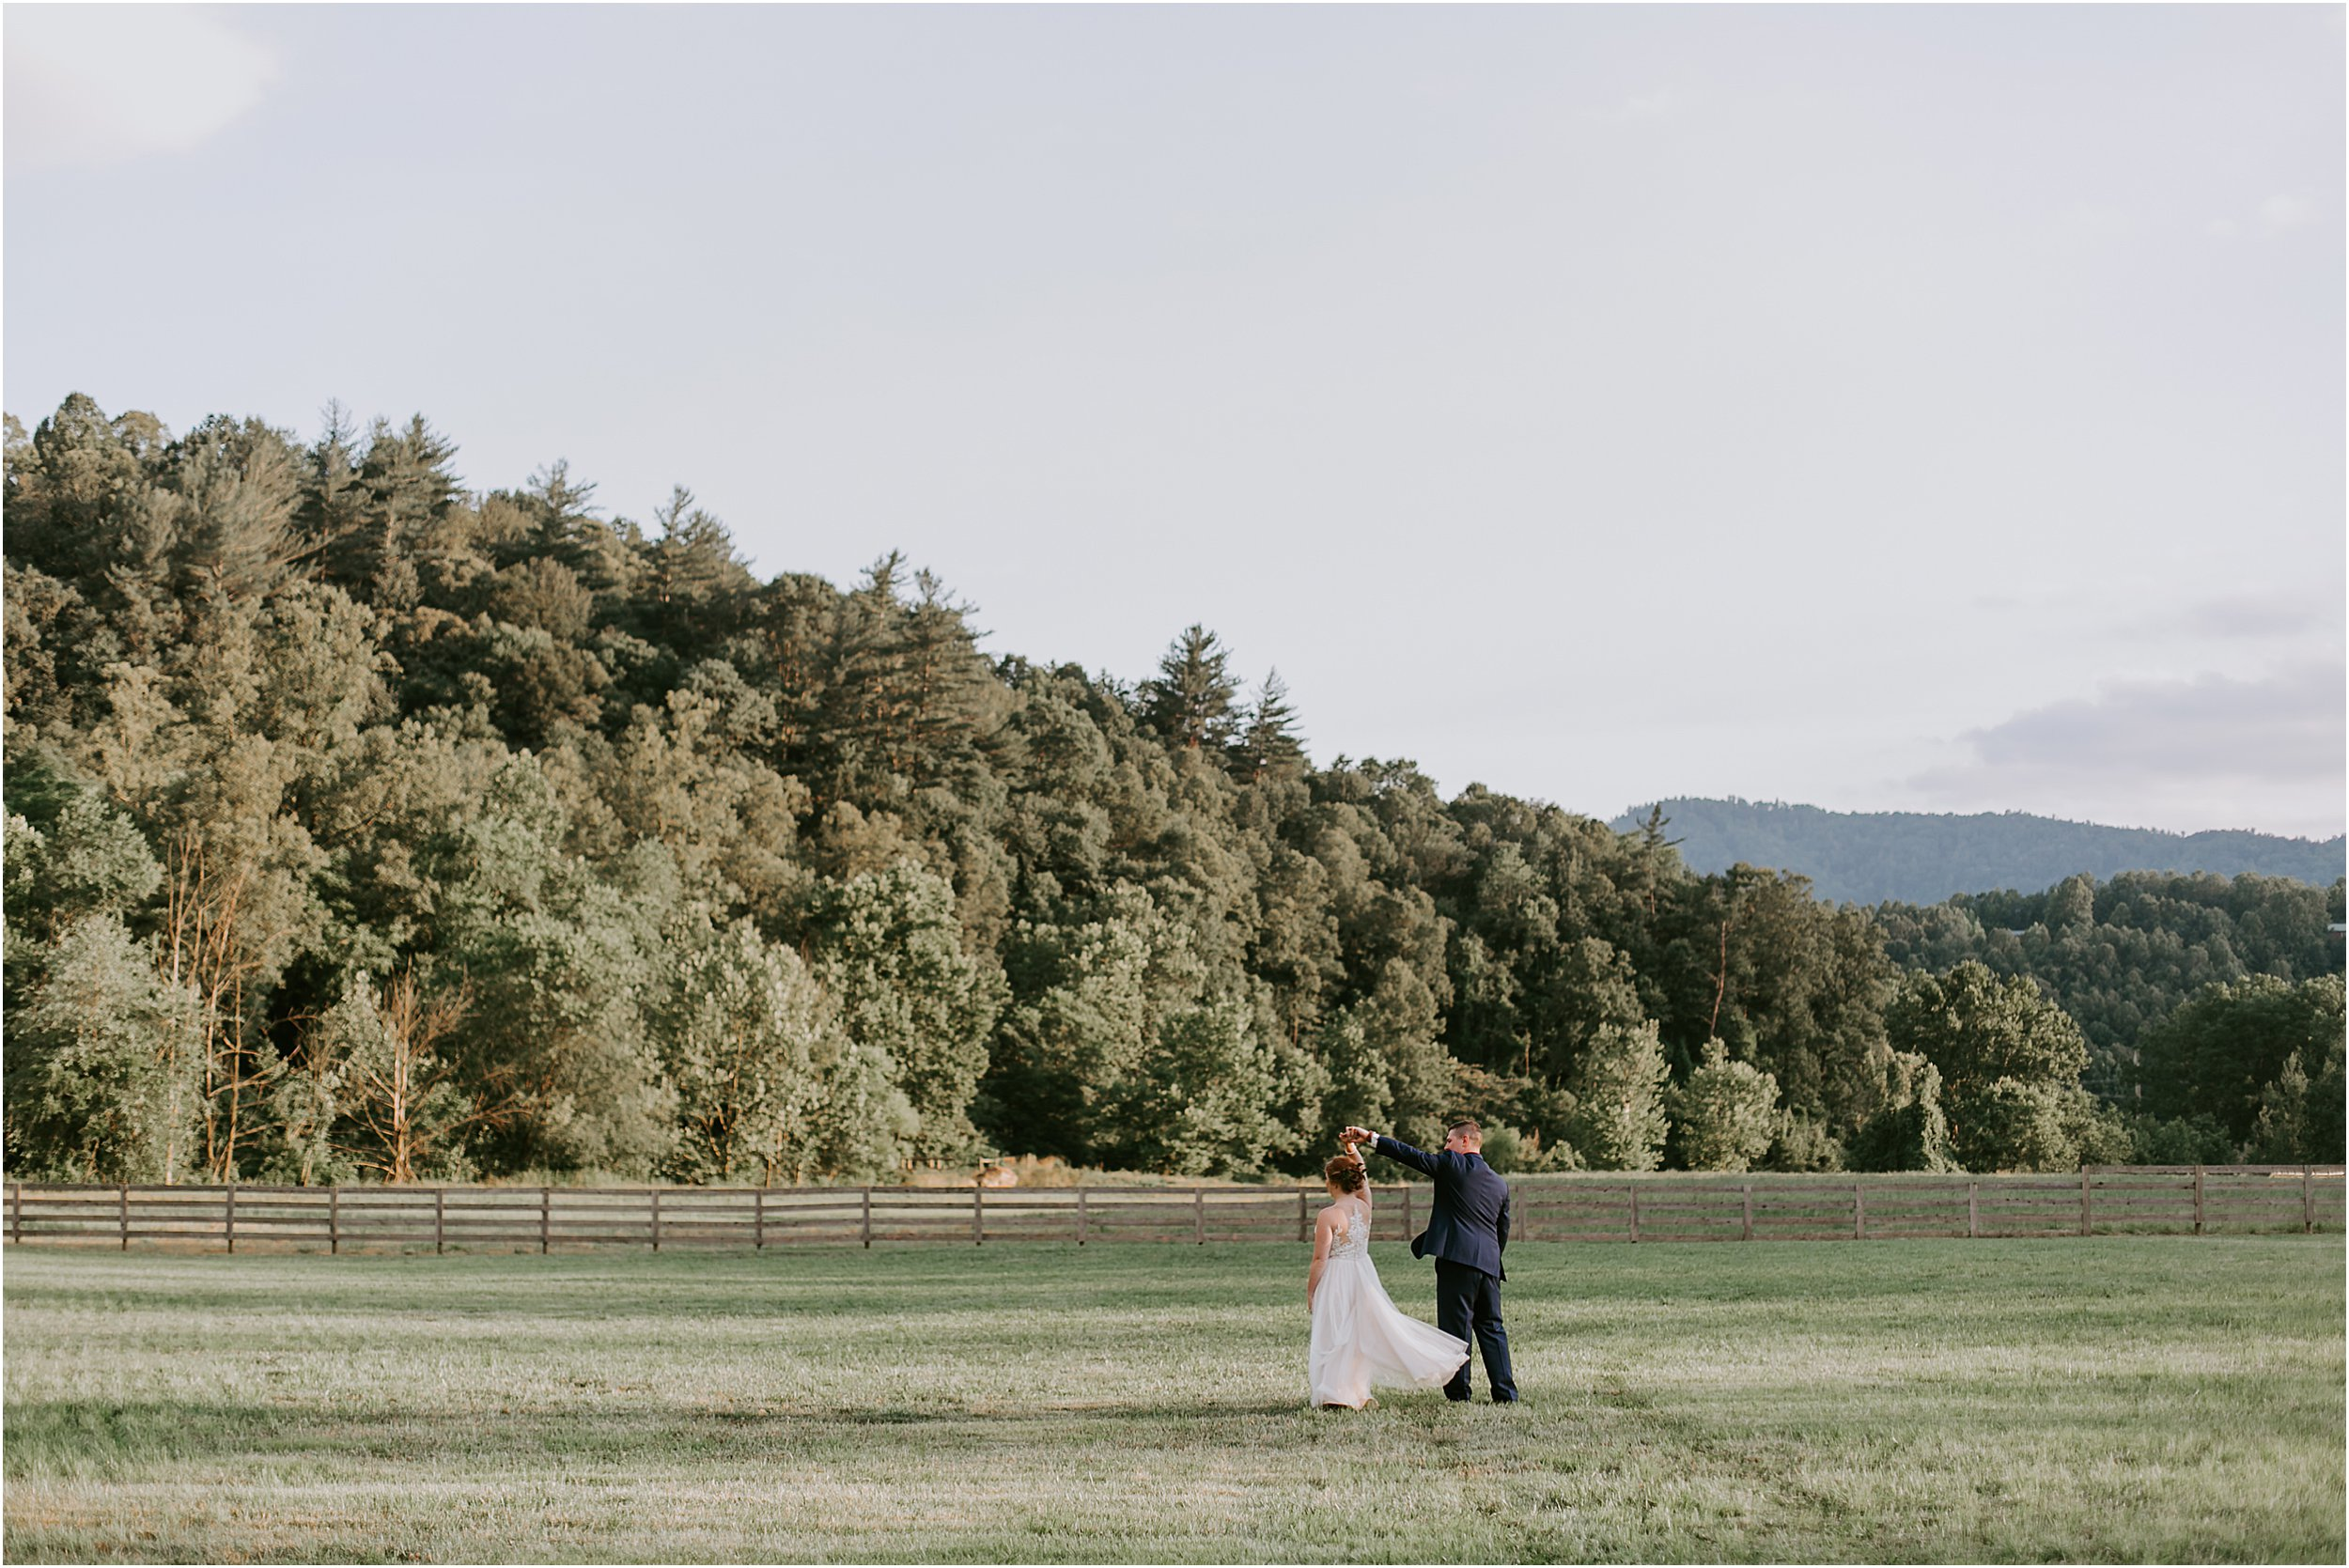 A bride and groom are far in the distance and he is spinning her. The sun is low and there are mountains in the background.